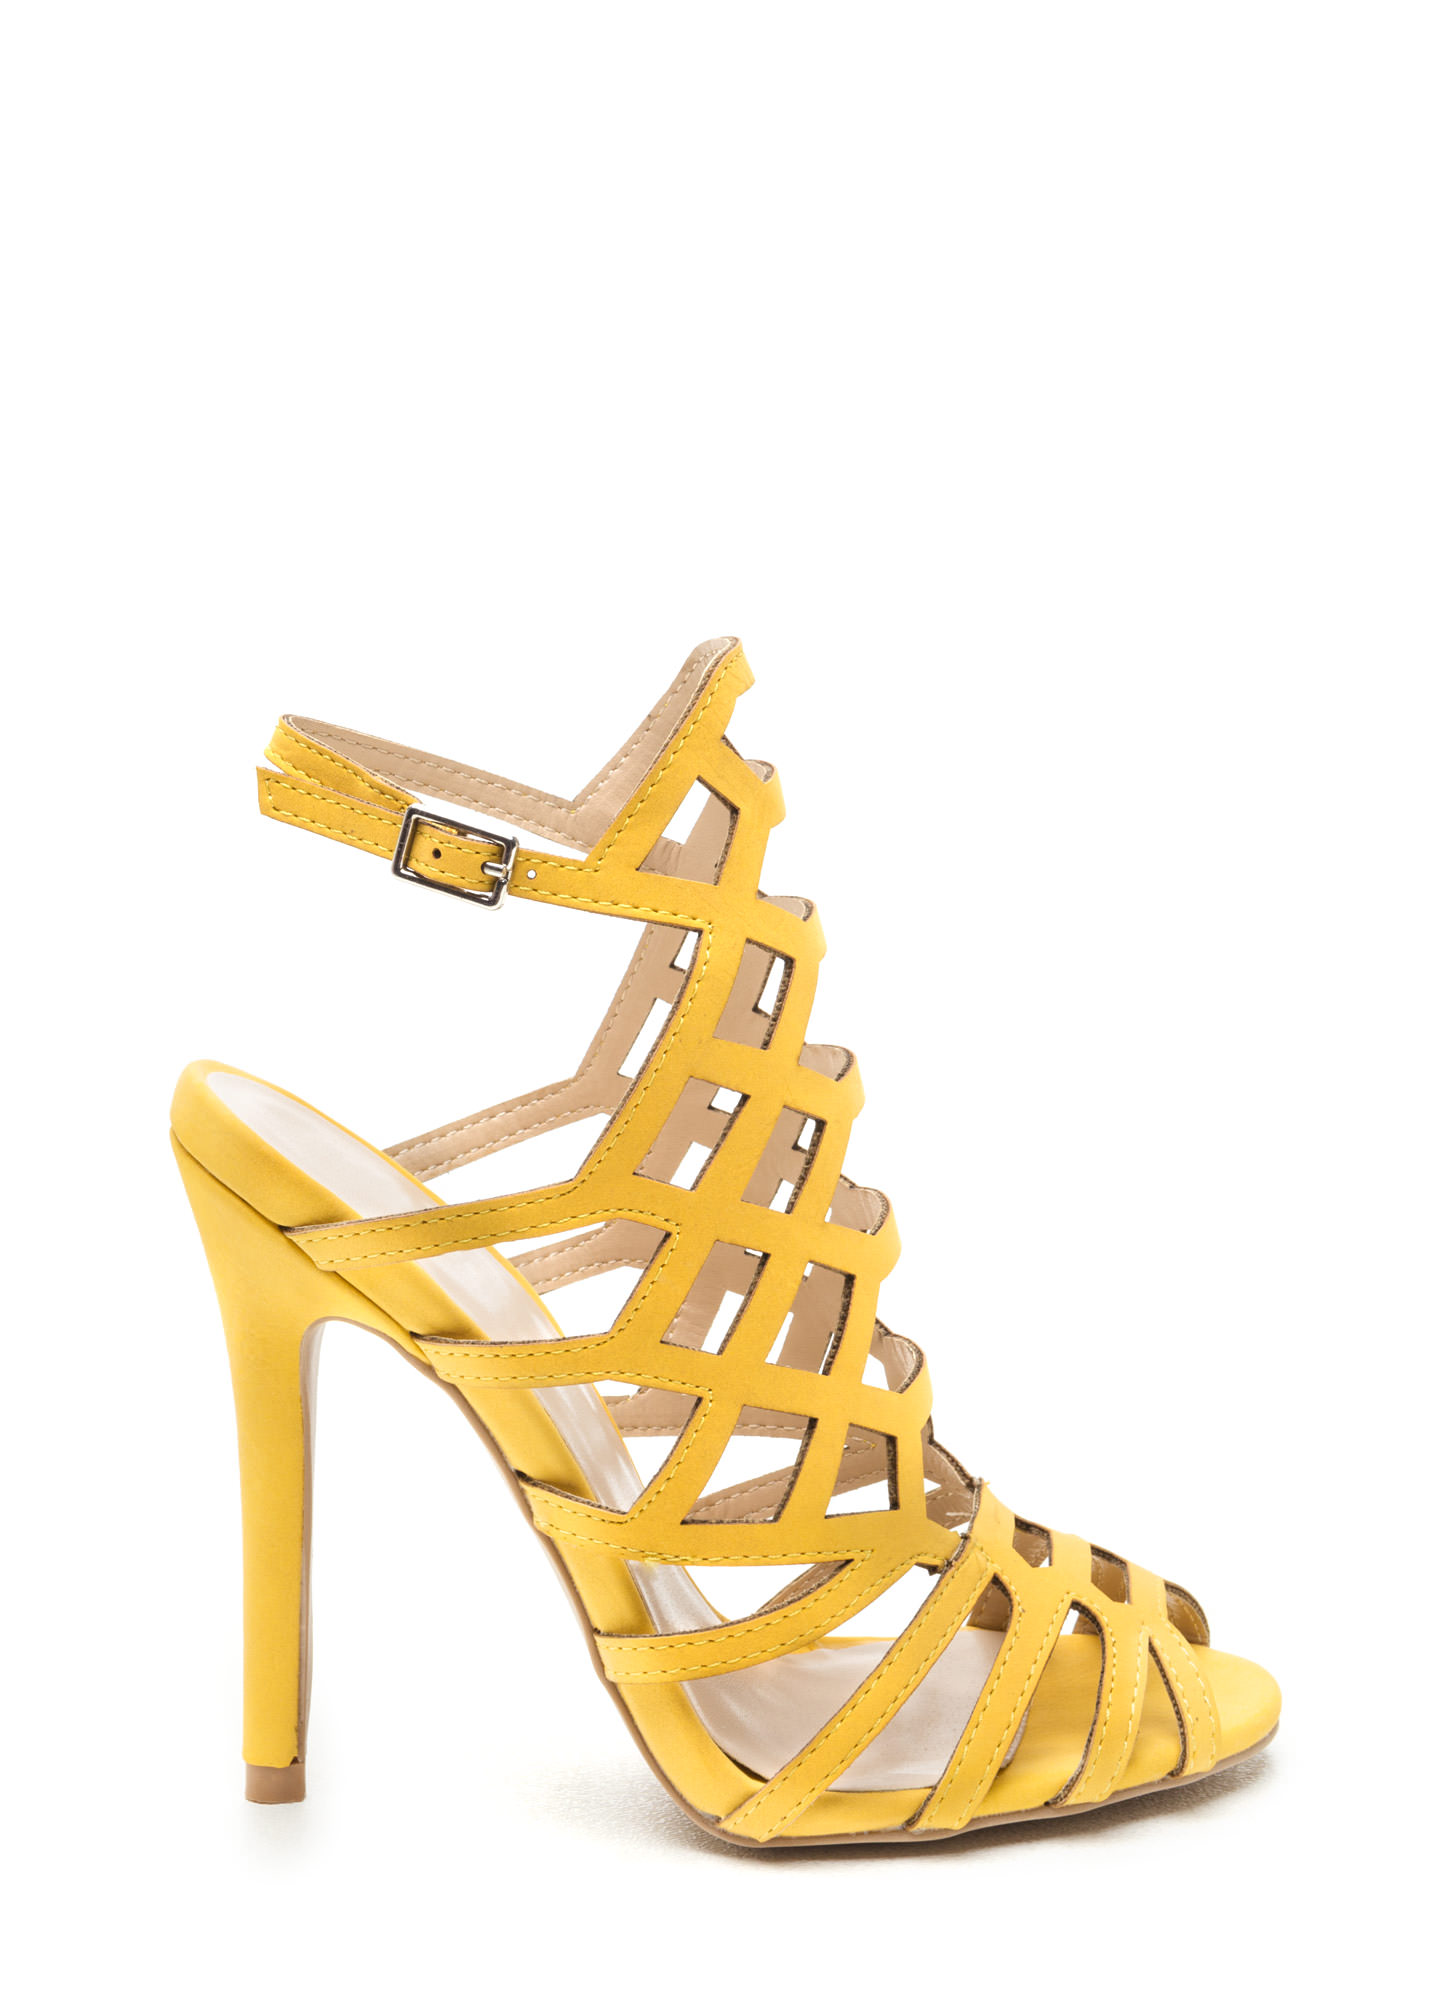 Yellow Womens Heels yiTEqfxs